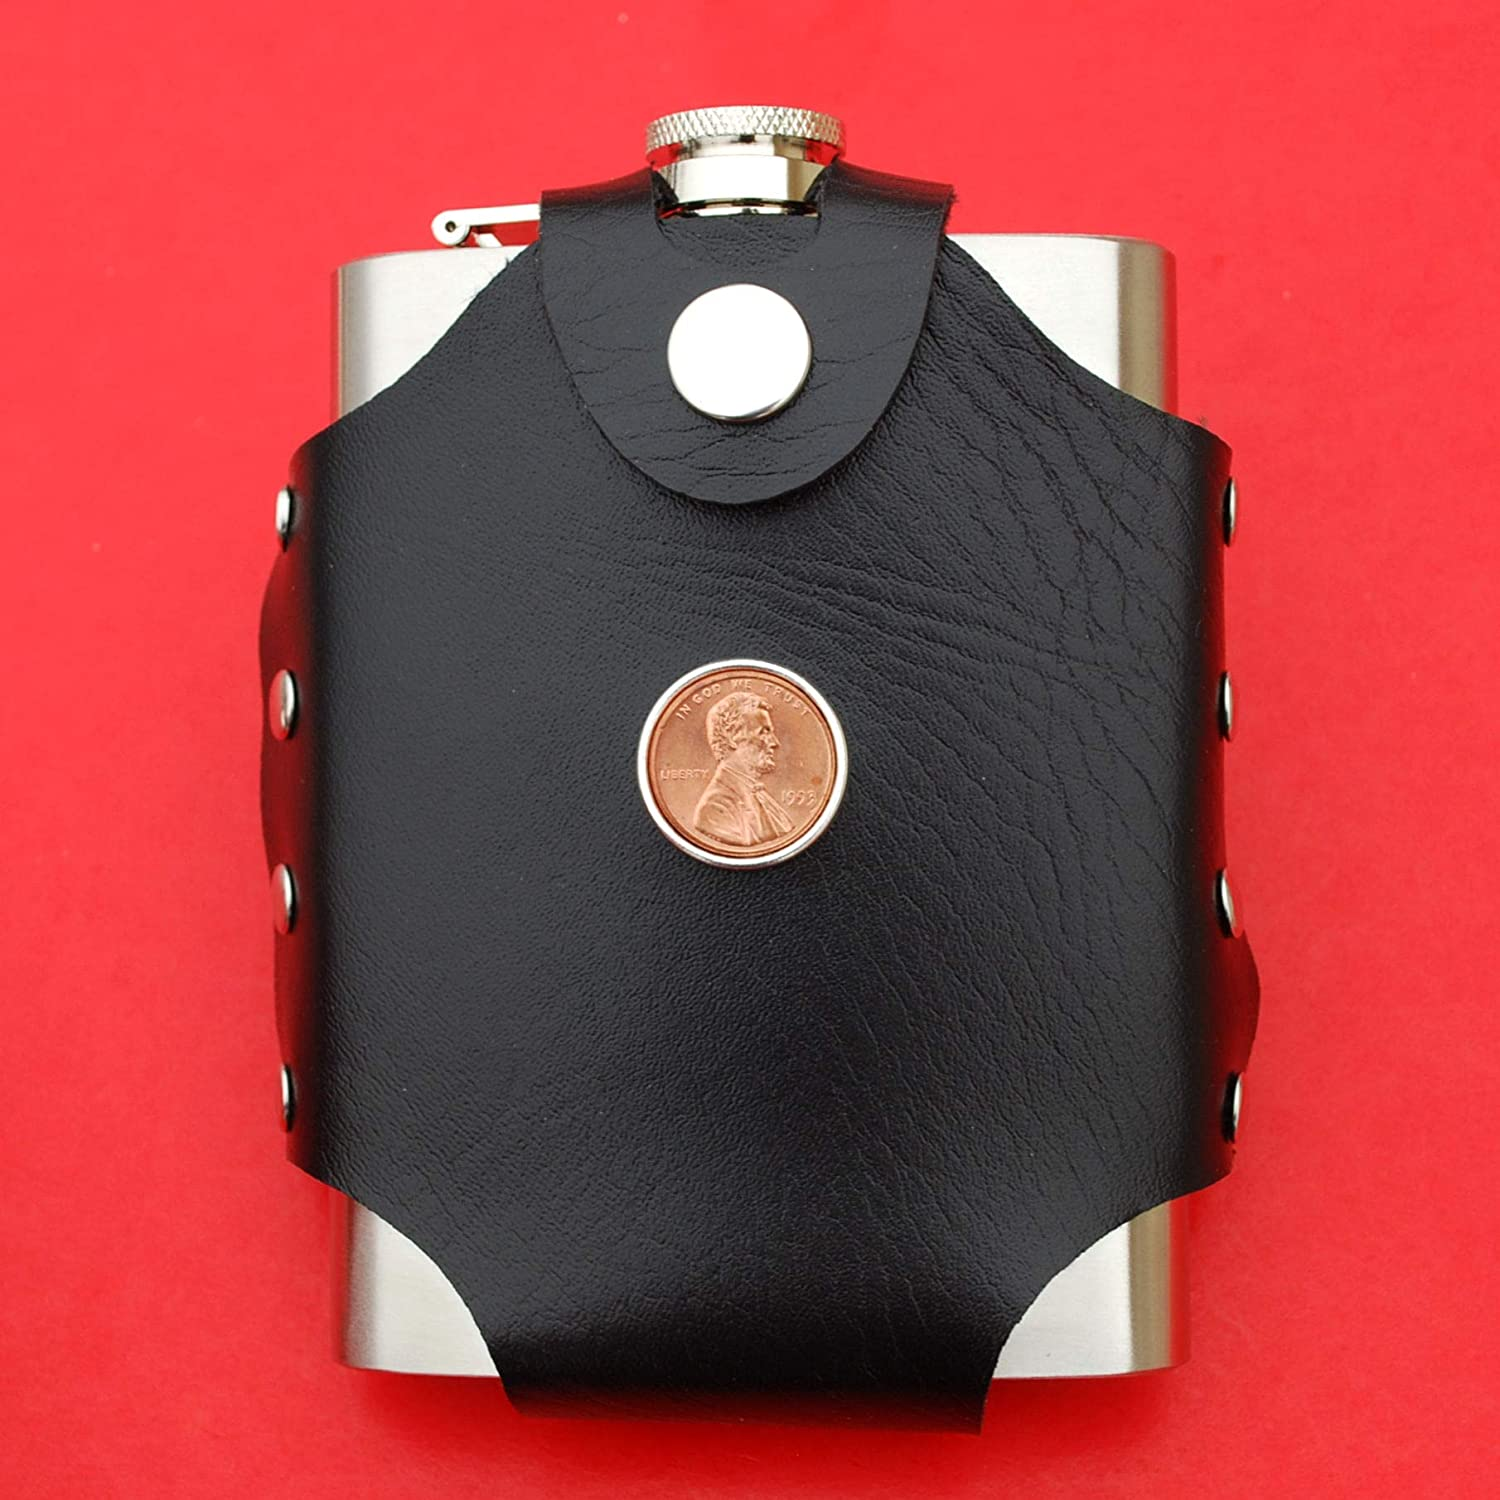 - Lucky Penny US 1993 Lincoln Penny BU Uncirculated 1 Cent Coin Leak Proof Black PU Leather Wrapped Stainless Steel 8 Oz Hip Flask Water Wine etc Liquor